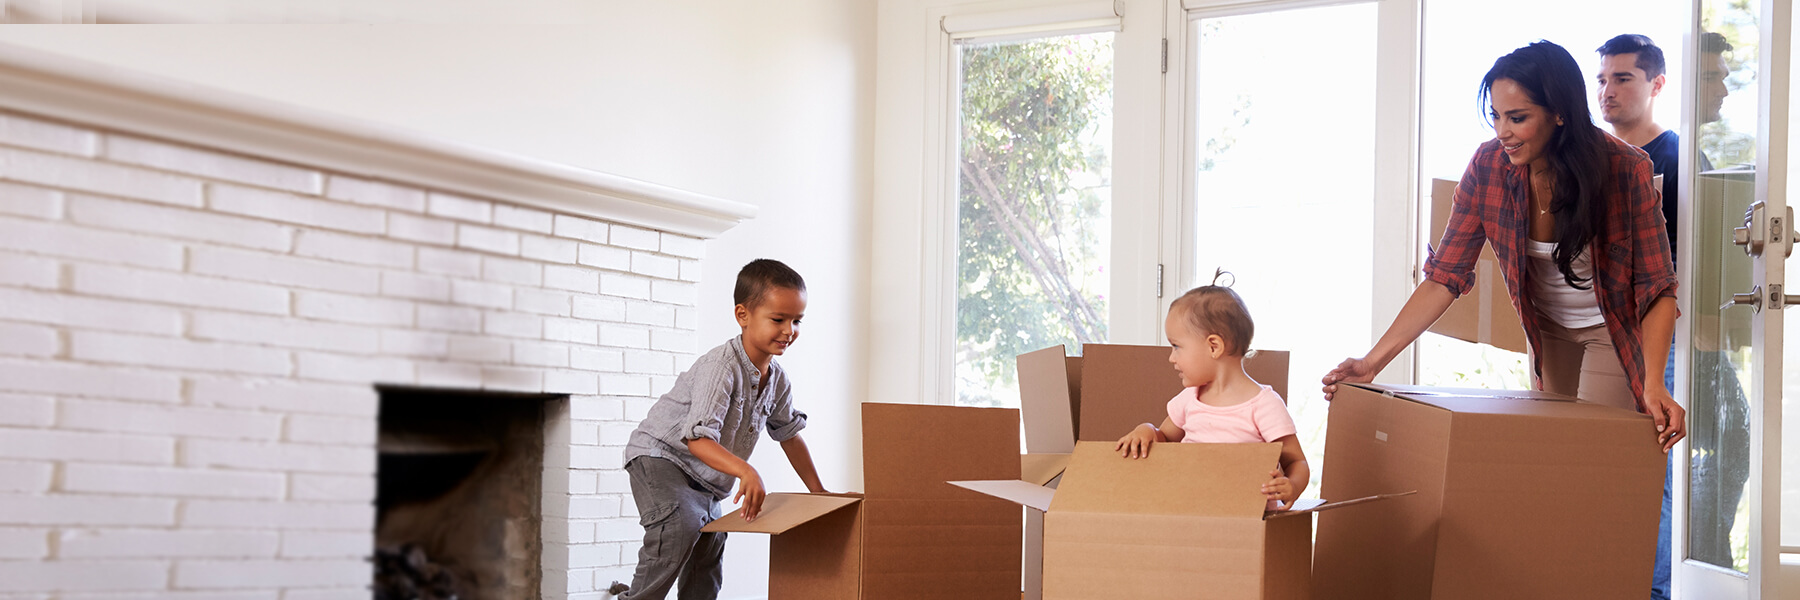 Family with young children moving into their new home unpack boxes in the empty  living room